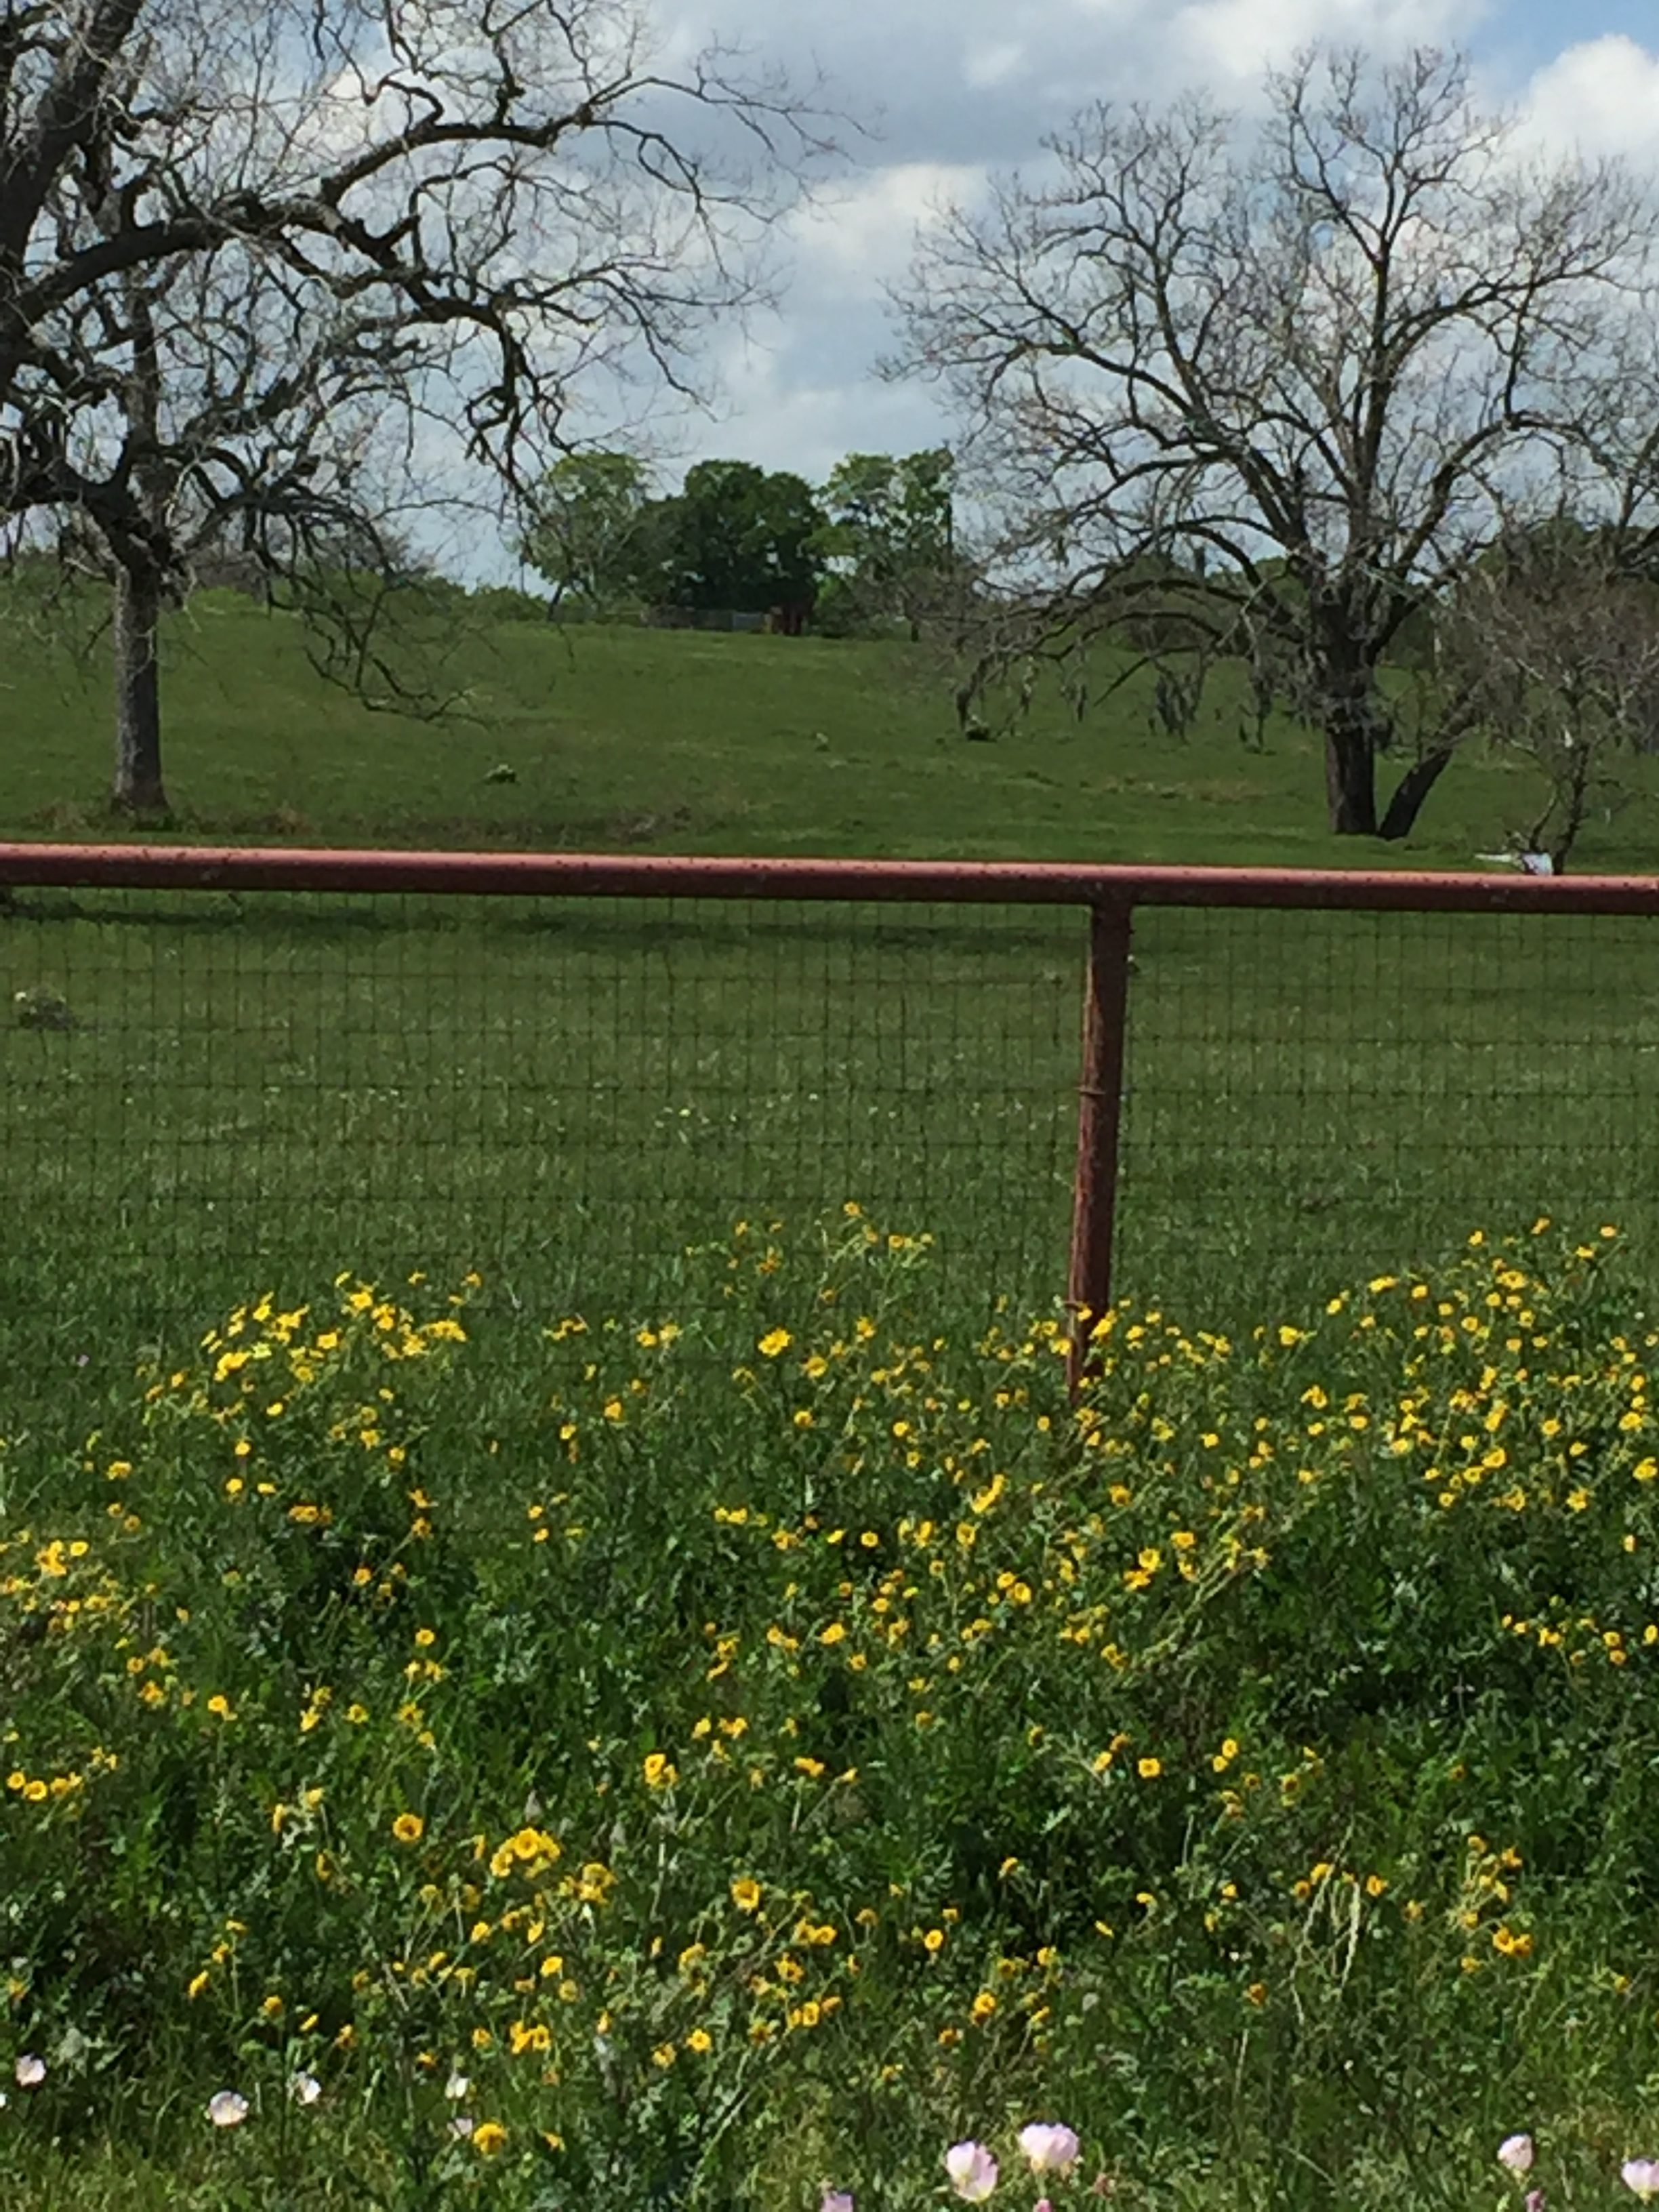 Texas Hill Country Is Filled With Bluebonnets And Yellow Dycs